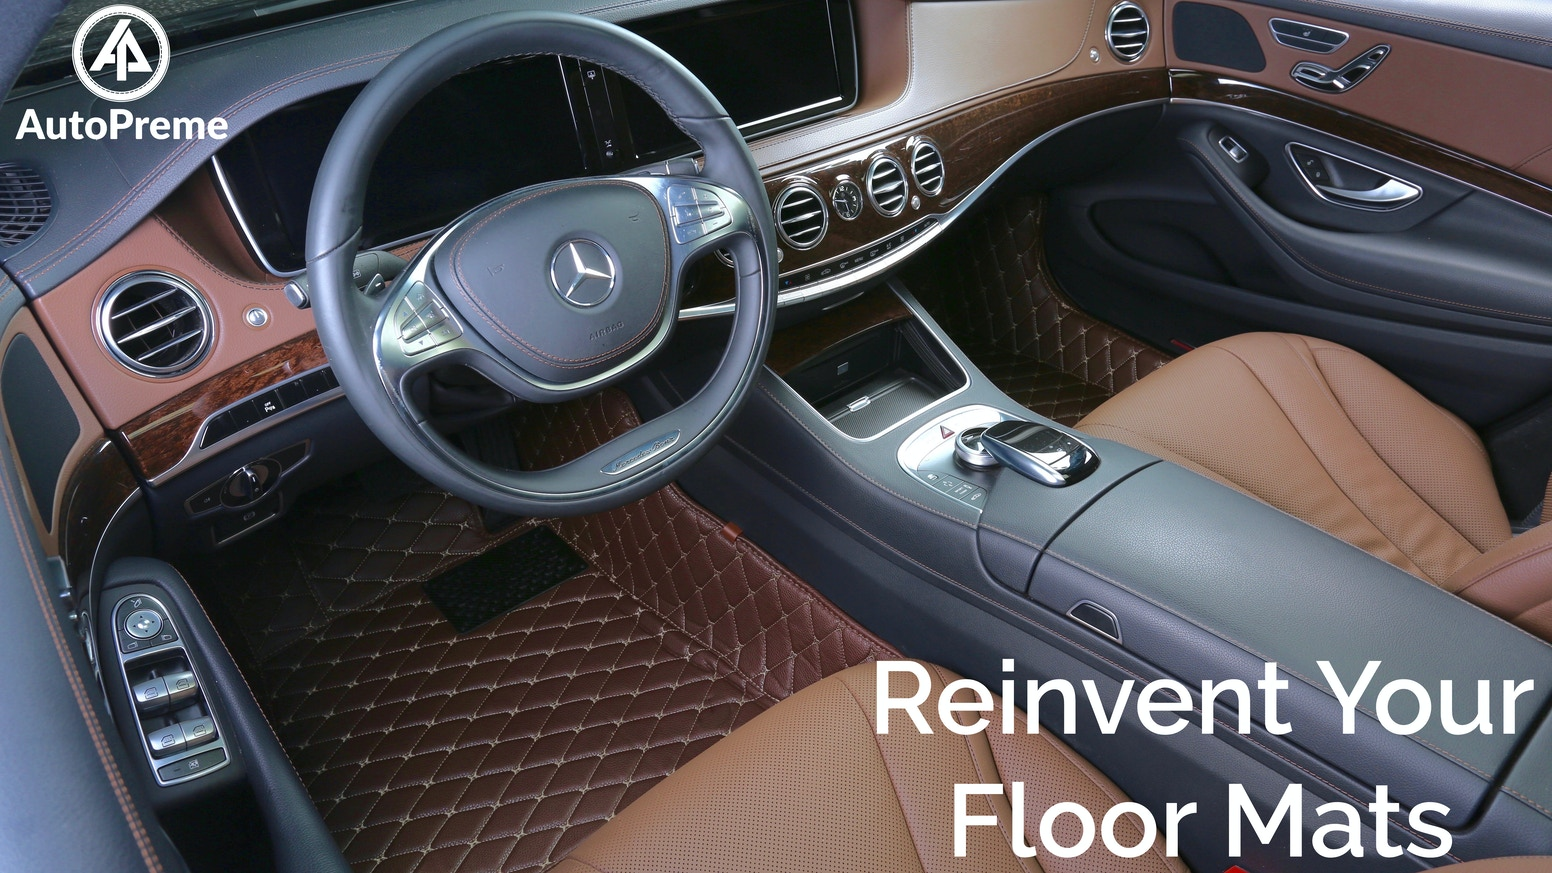 Autopreme Reinvent Your Floor Mats By The Autopreme Team Kickstarter